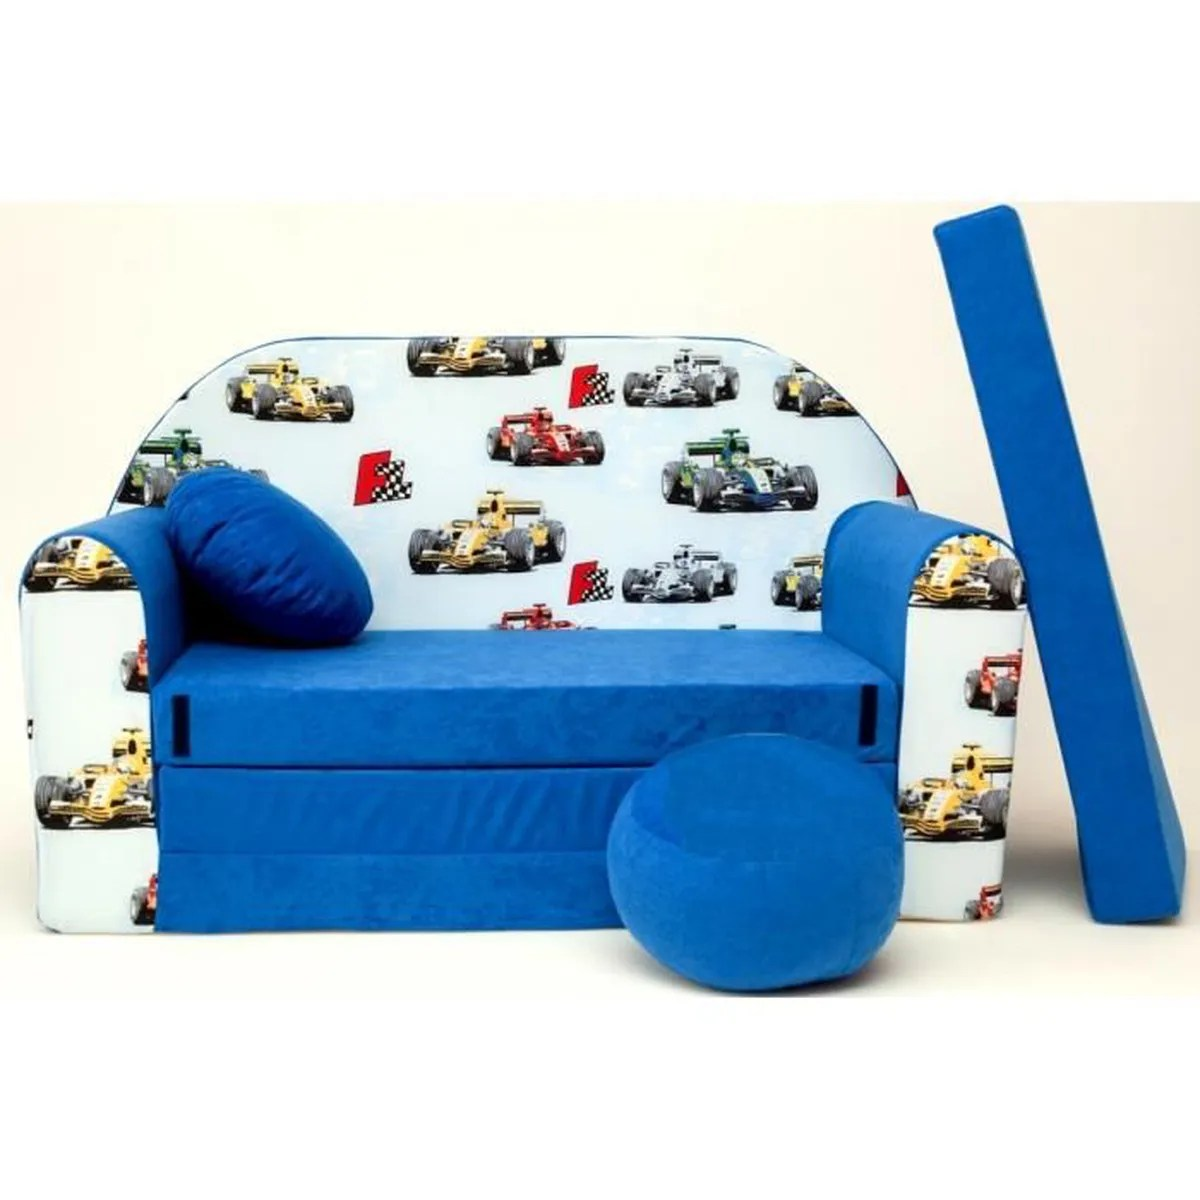 Canape Sofa Enfant 2 Places Convertible Formule1 F1 Bleu